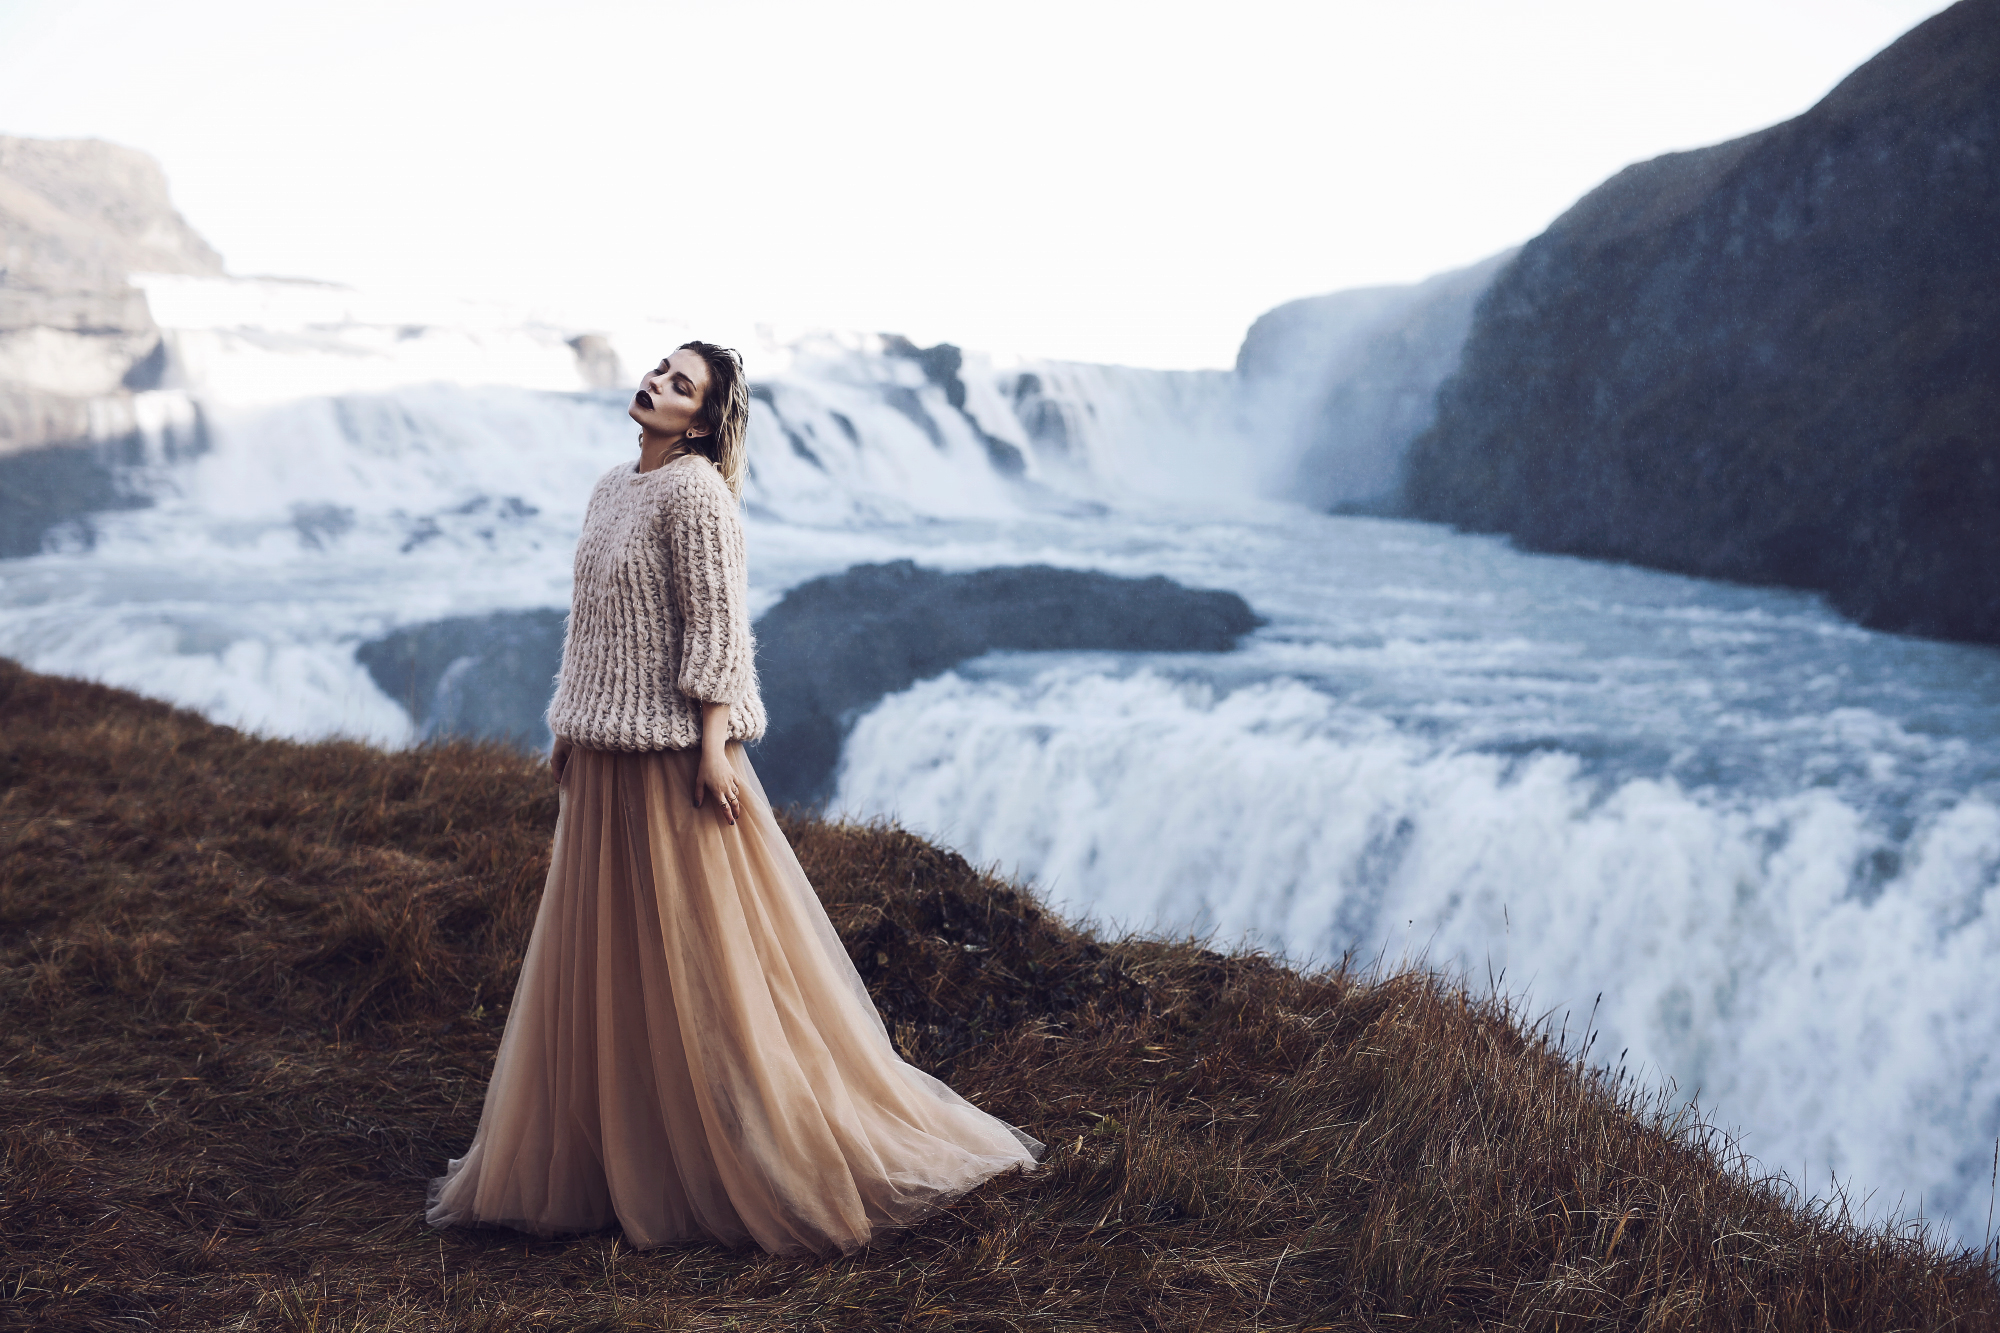 Waterfall in Iceland | Editorial Fashion Shooting for mybestbrands | style: feminine, melancholic, winter princess